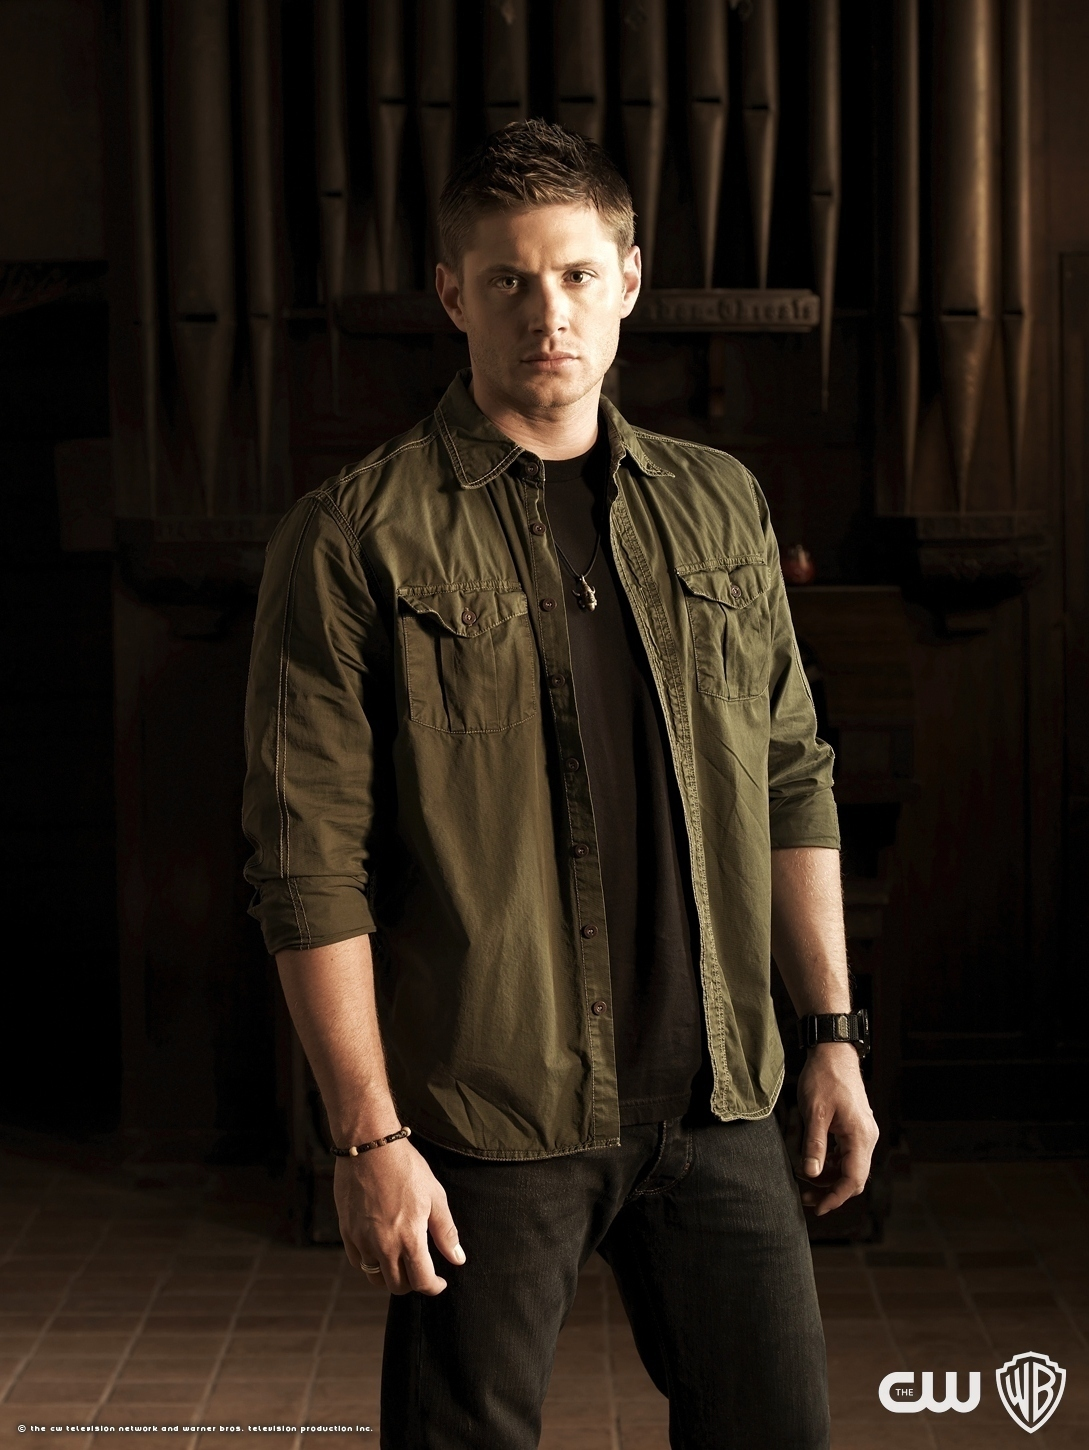 Dean HQ fotos